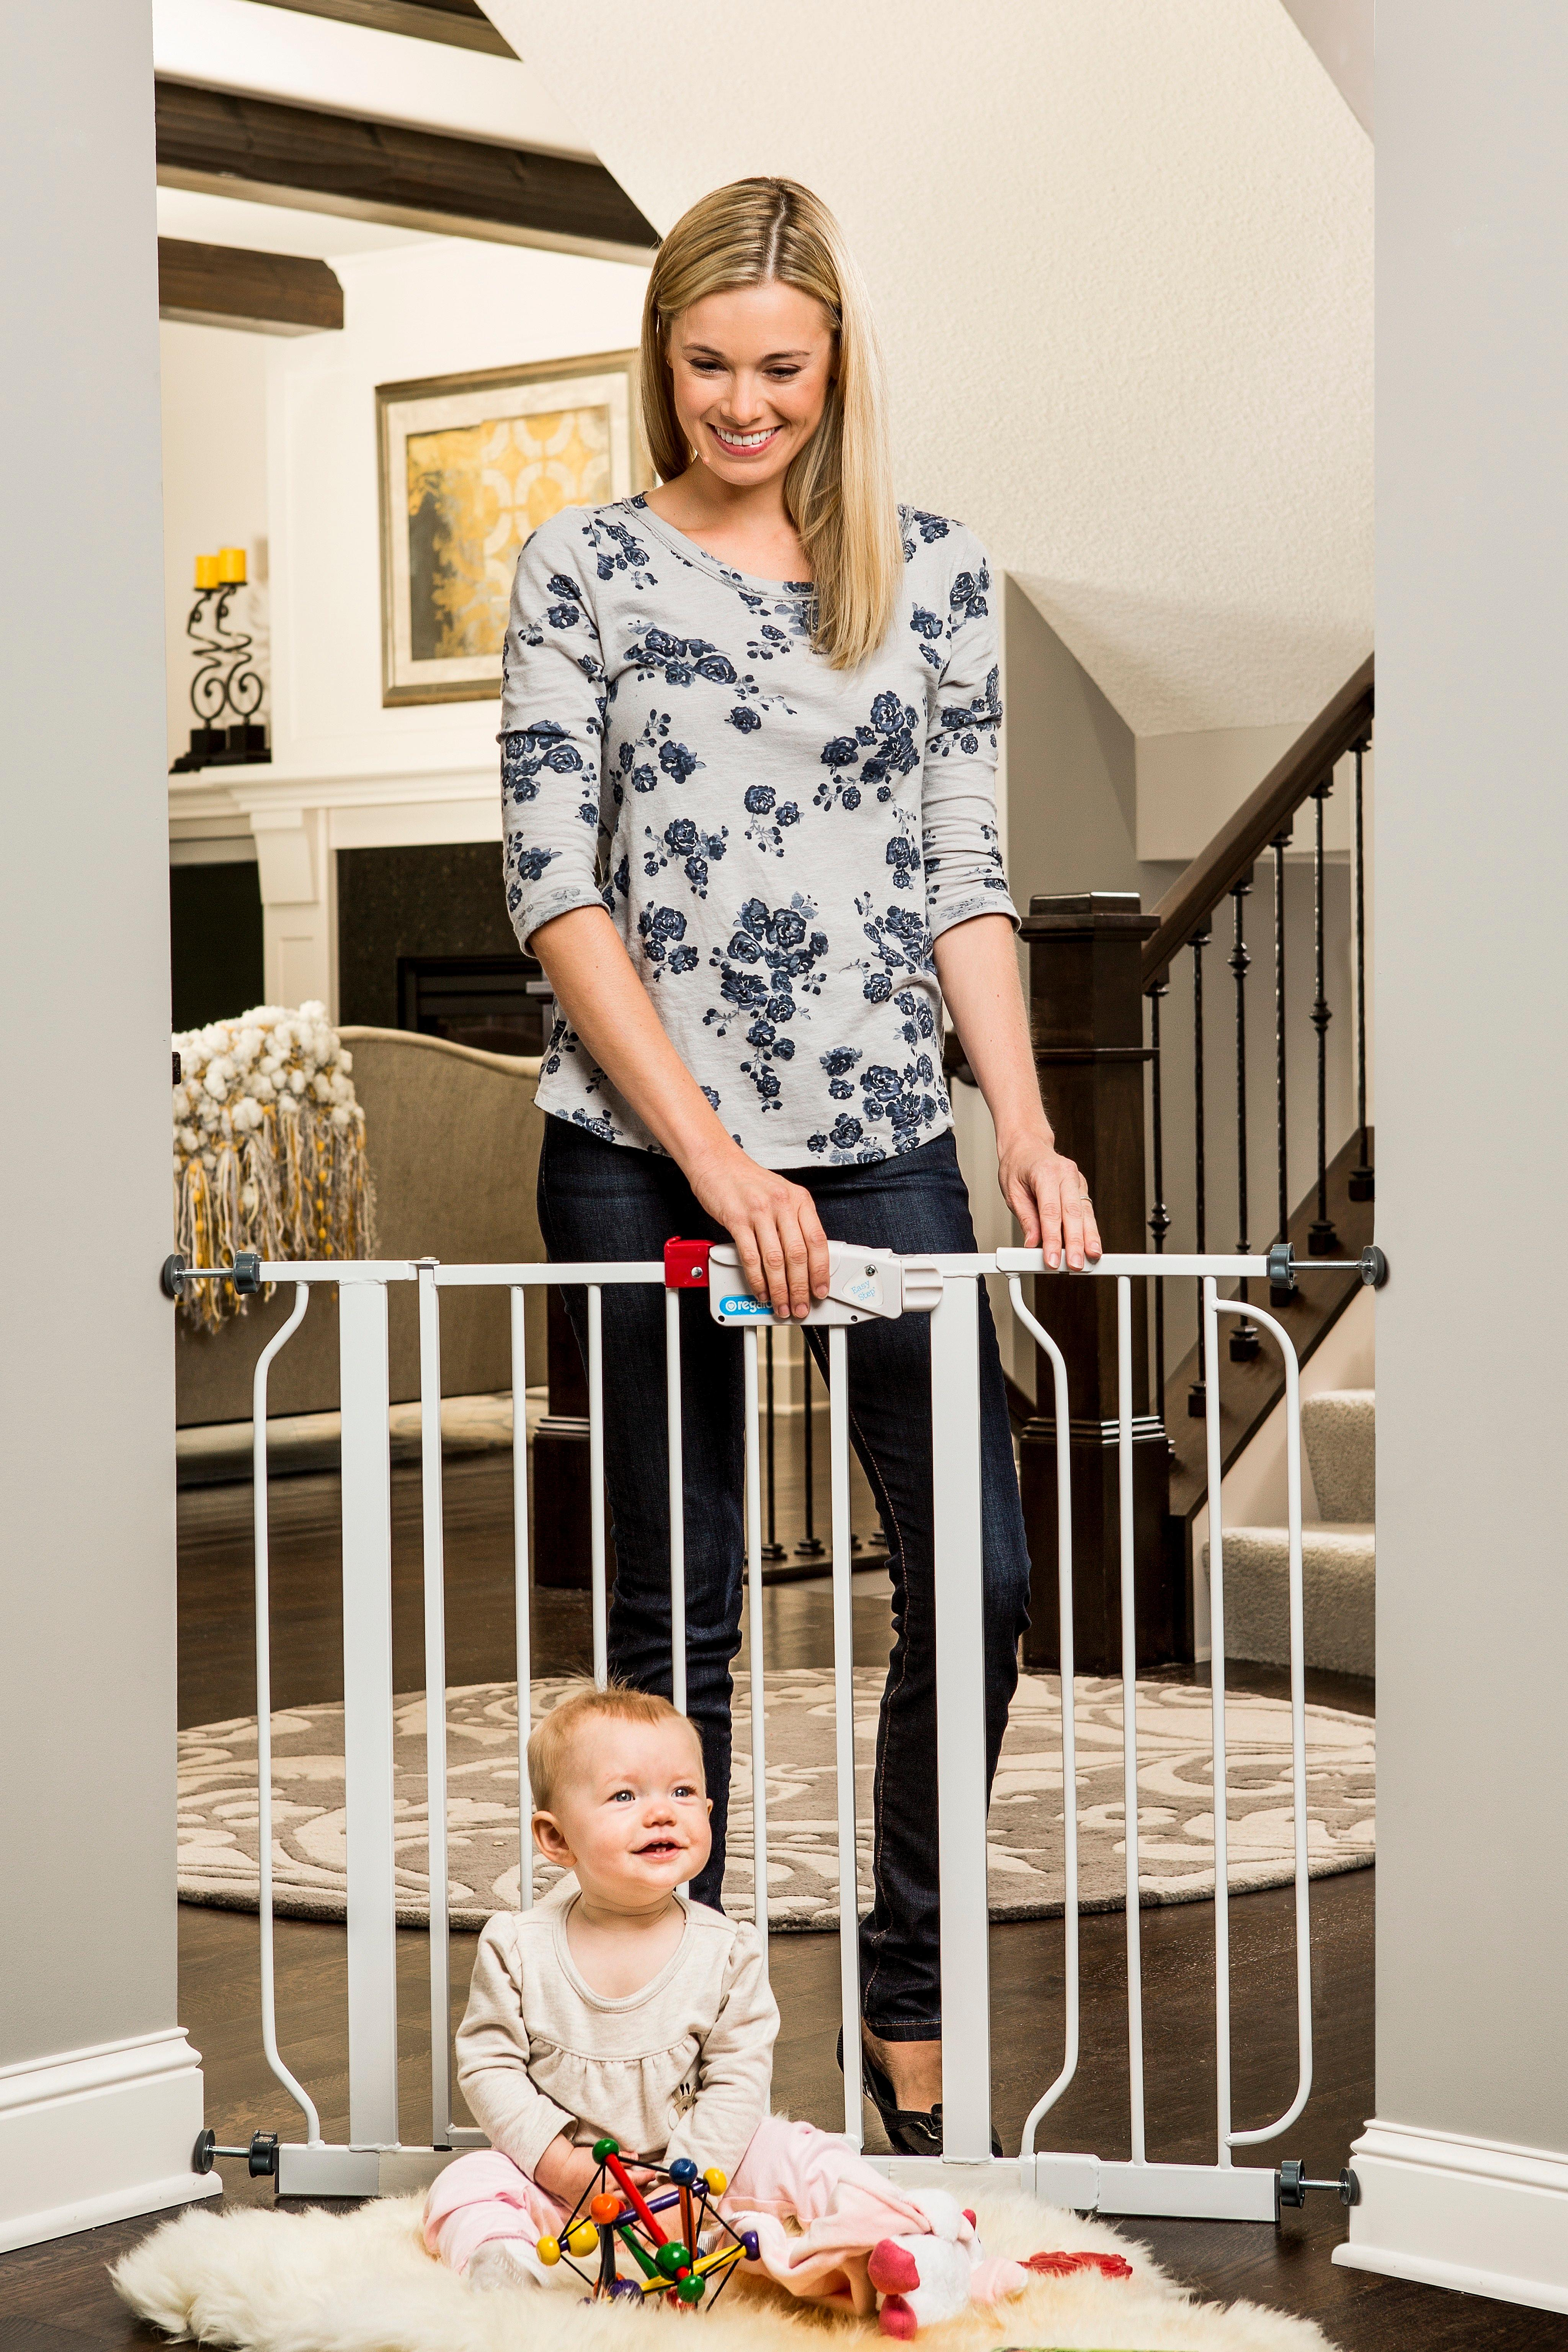 Baby Safety & Health Baby Gates With Swing Door Modern Regalo Easy Step Walk Thru Doorways Safety